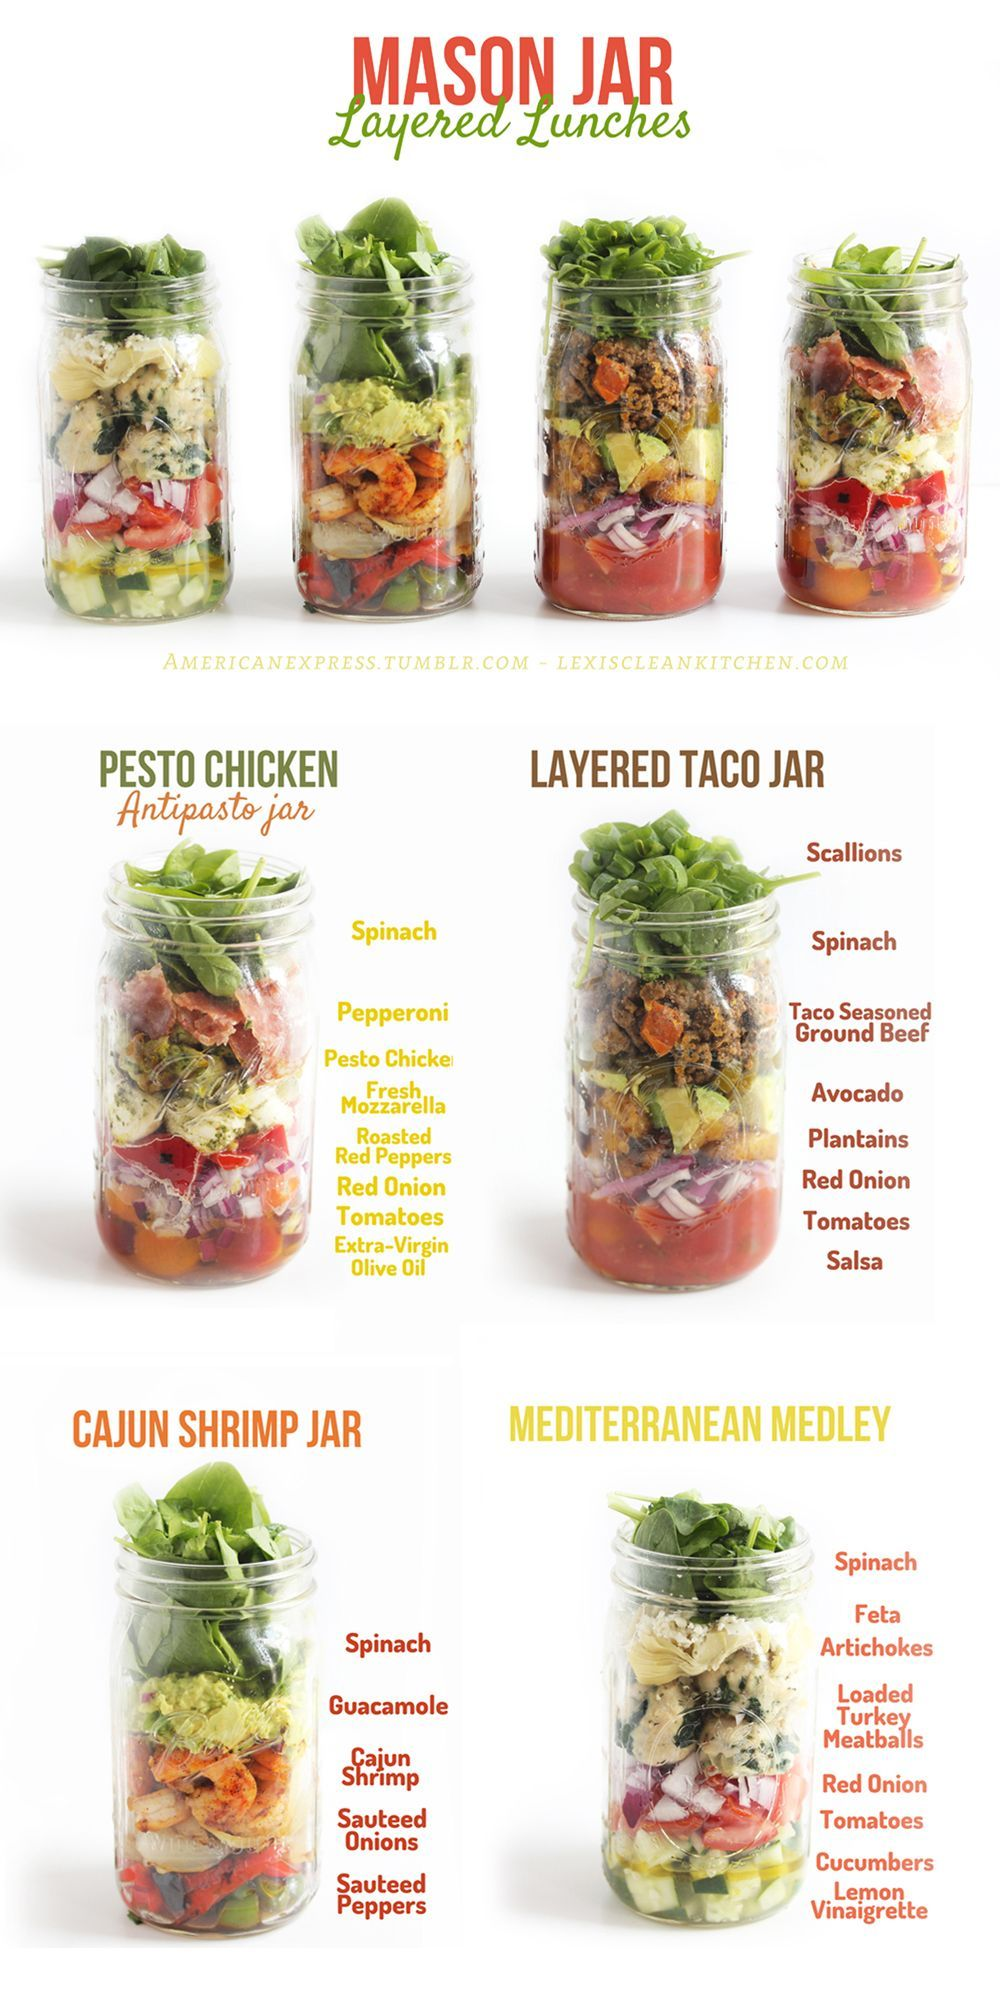 Mason Jar Layered Lunches - Lexi's Clean Kitchen